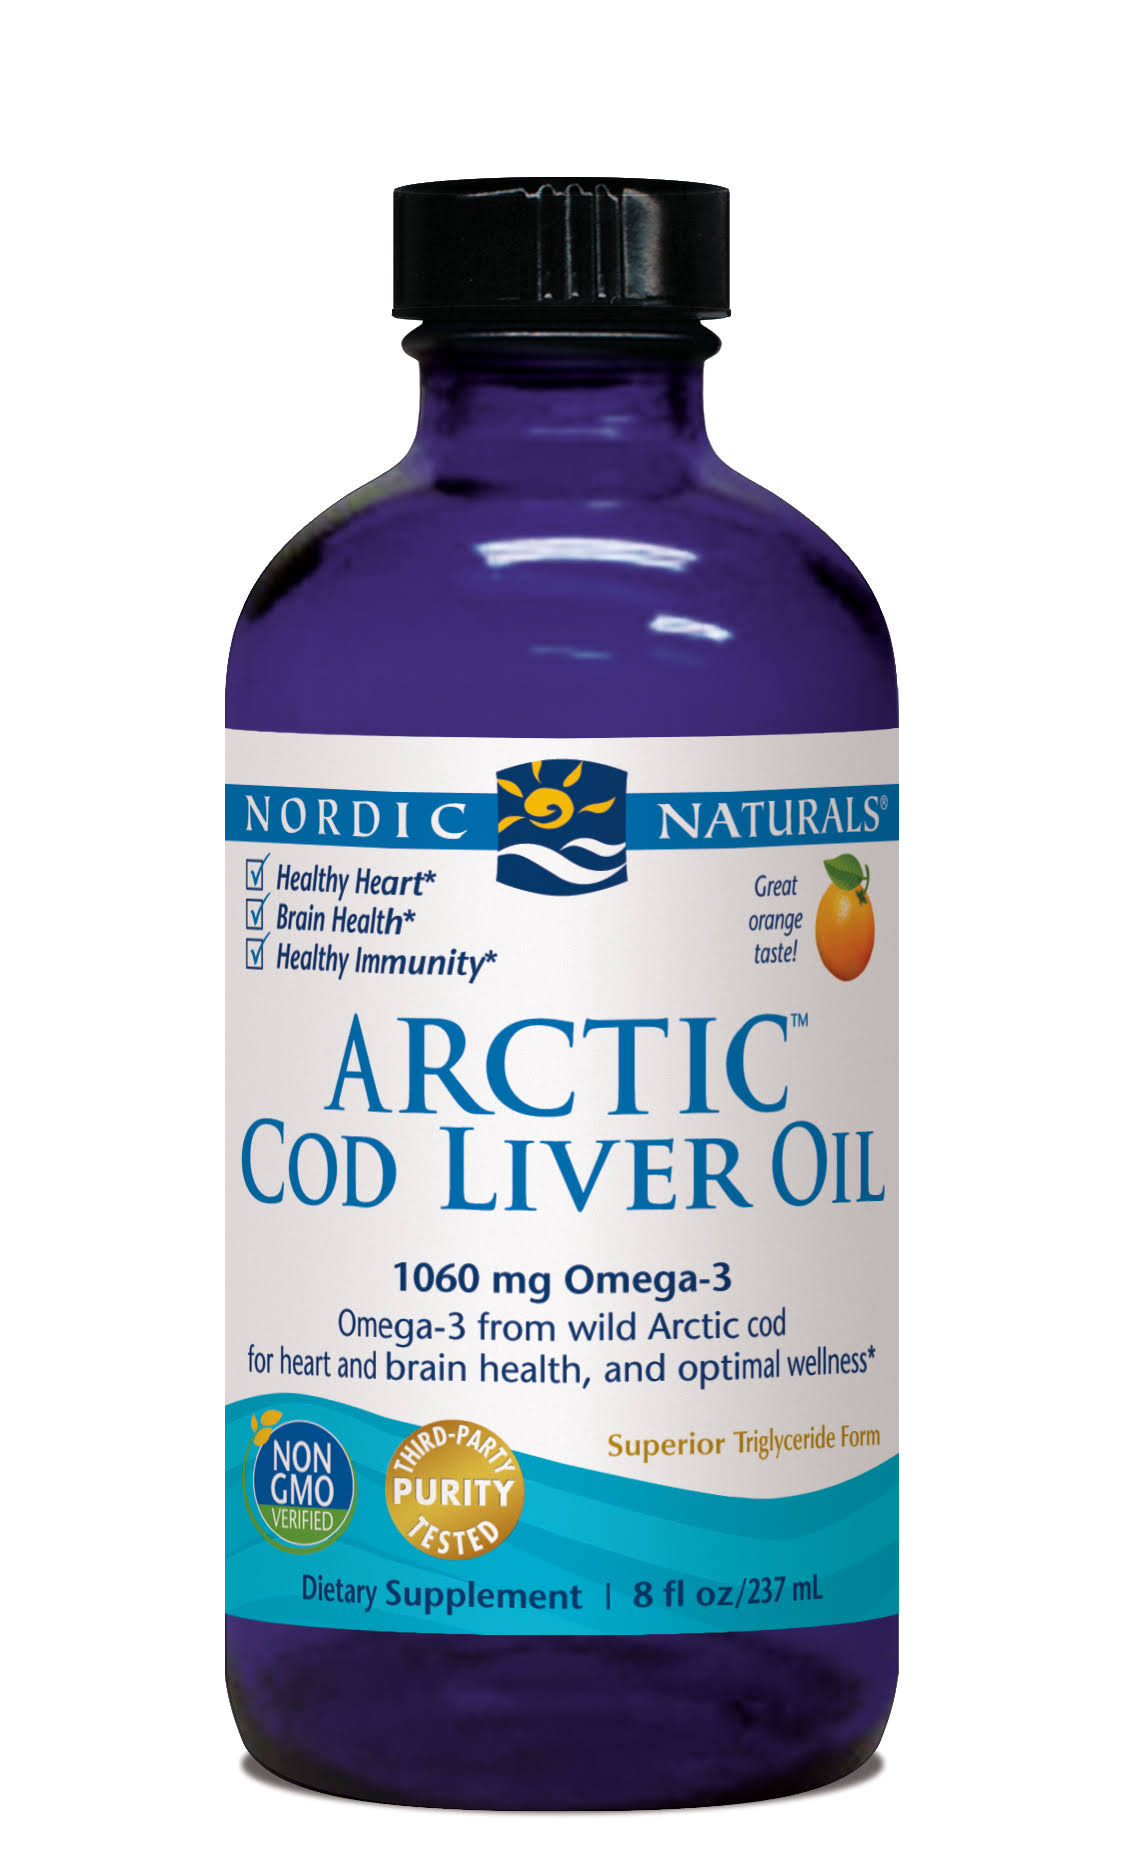 Nordic Naturals Arctic Cod Liver Oil, Great Orange Taste! - 8 fl oz